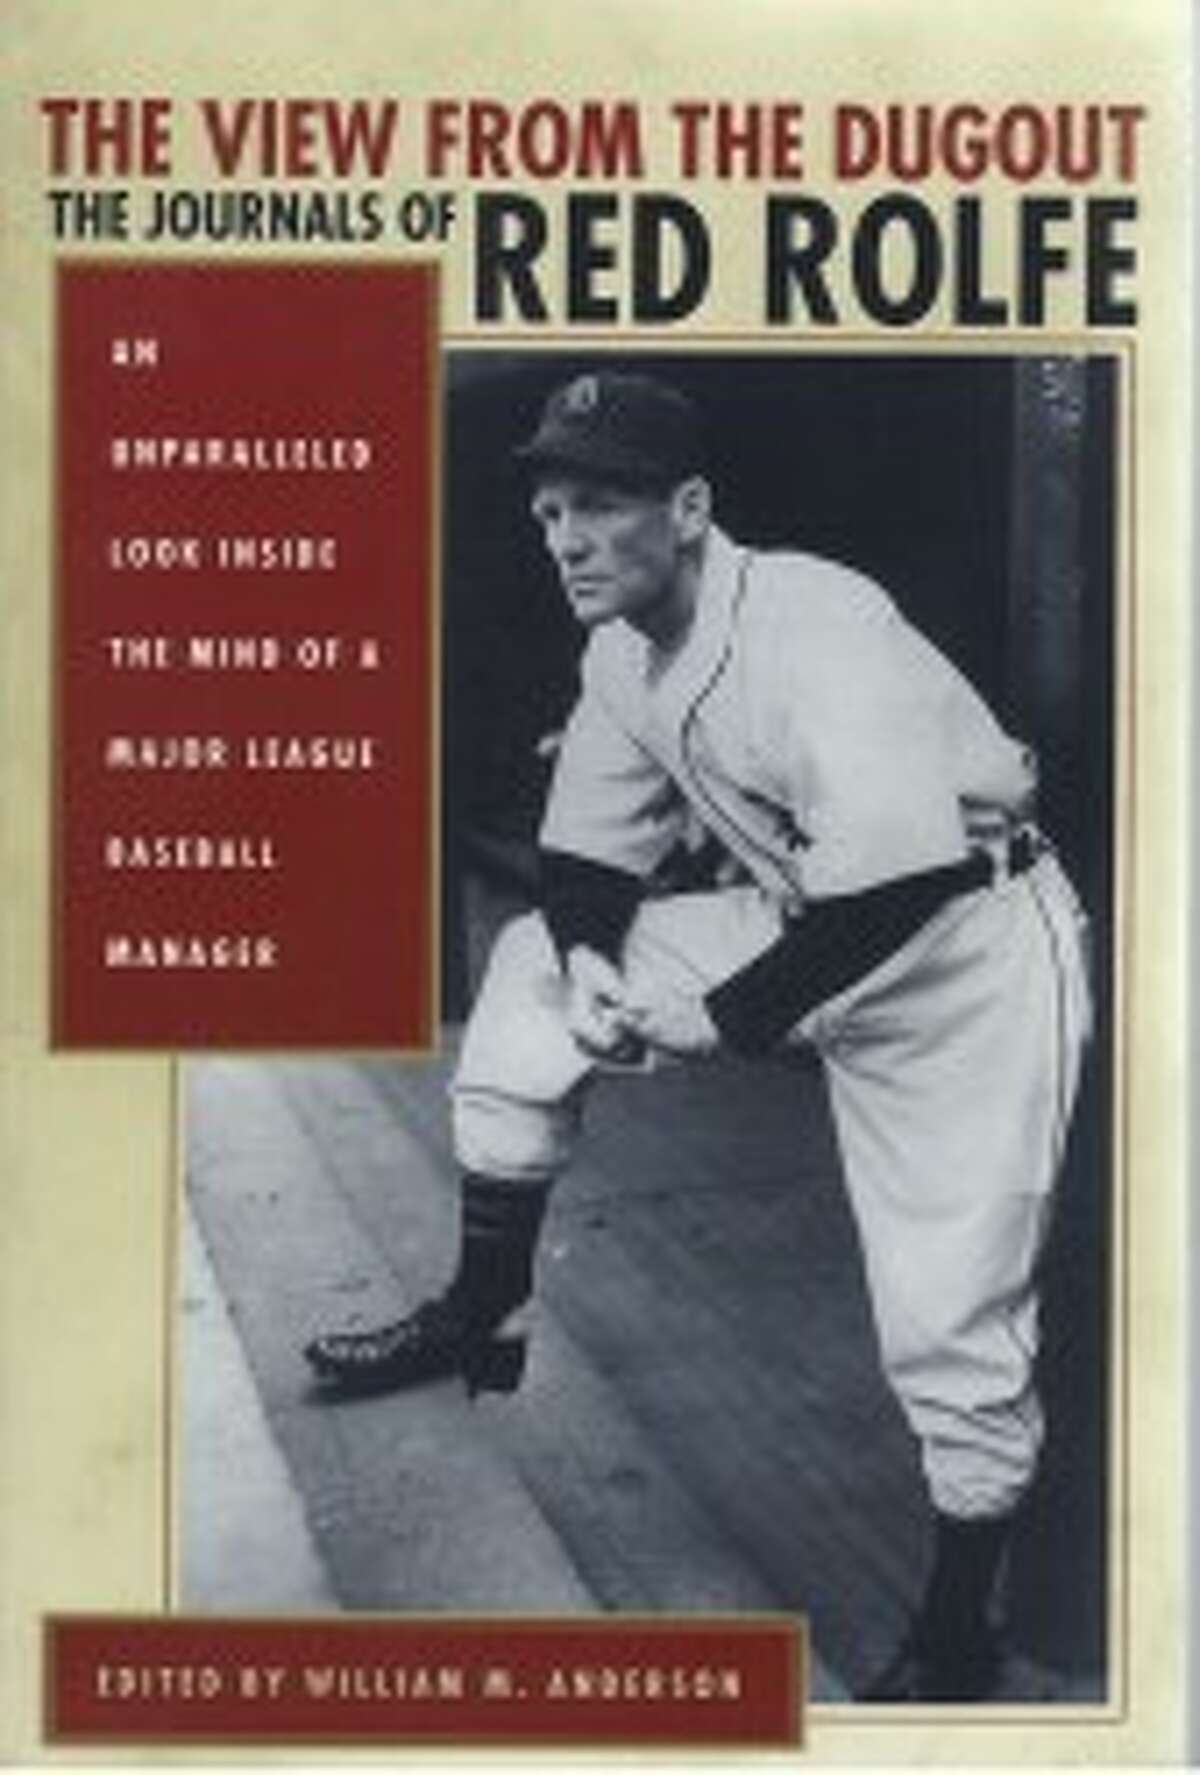 William M. Anderson, former president of West Shore Community College, edited this book based on the journal kept by 1949-52 Detroit Tigers manager Red Rolfe.